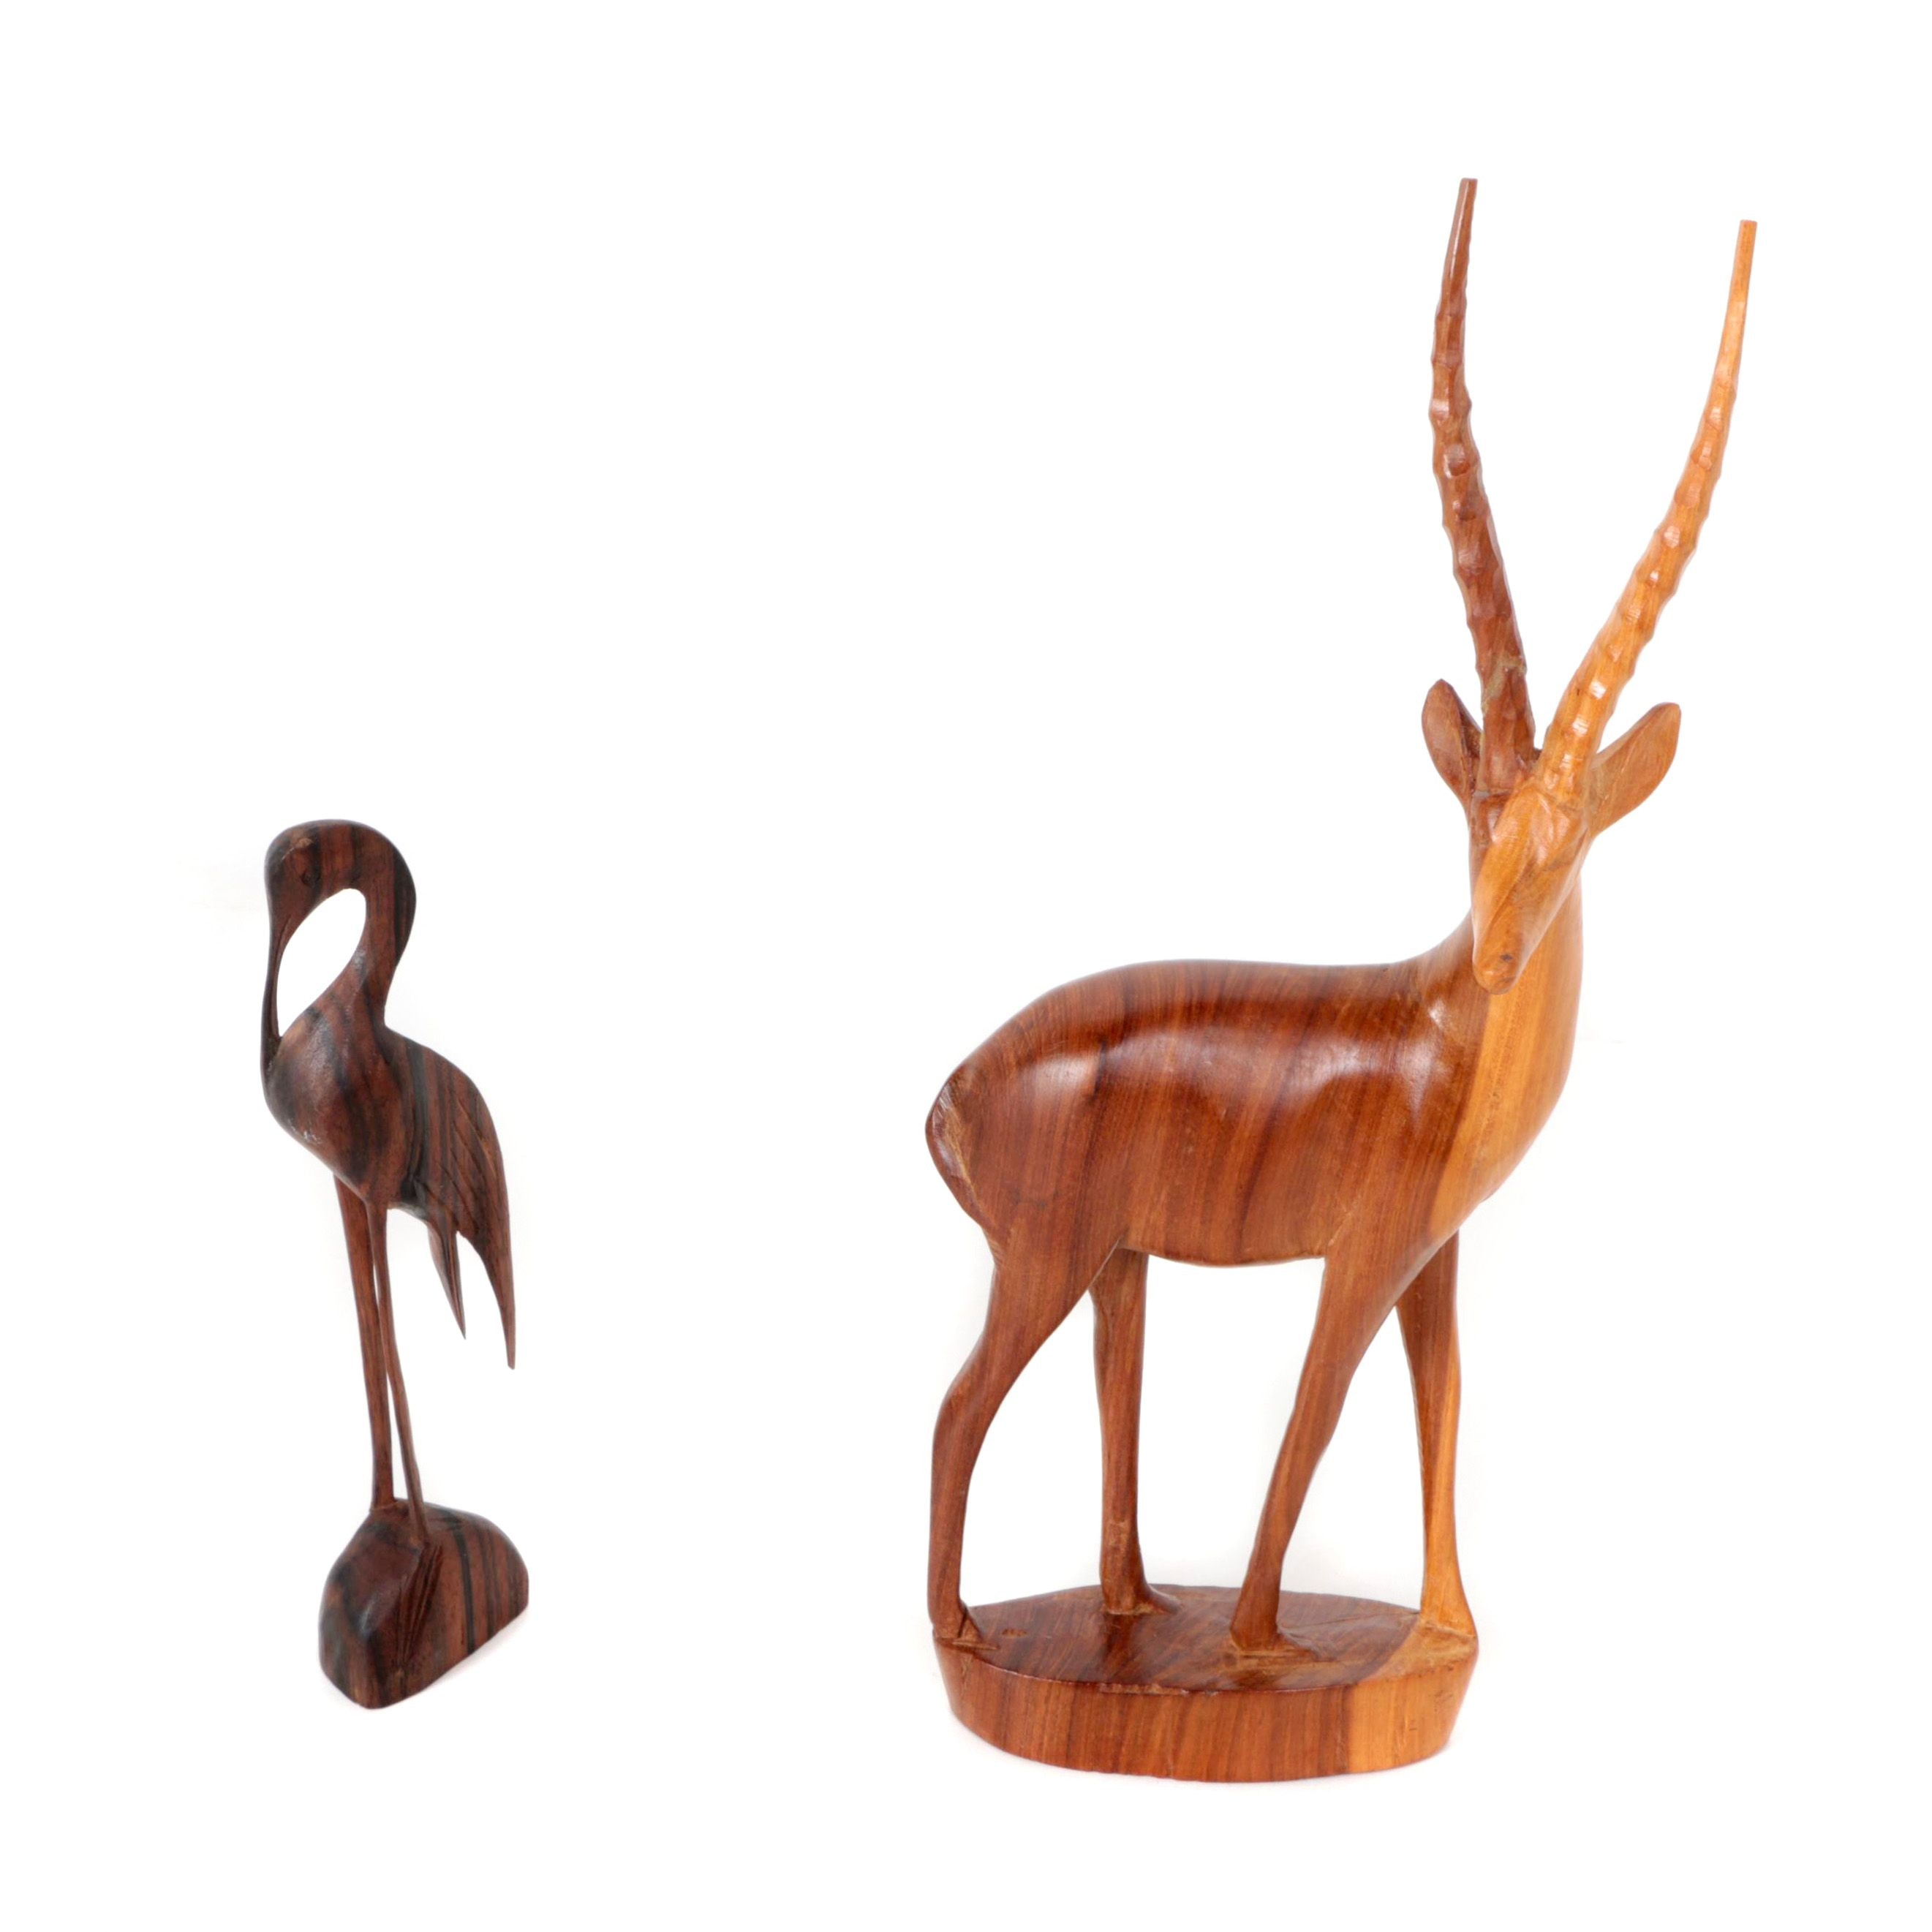 Carved Wood Animal Figurines